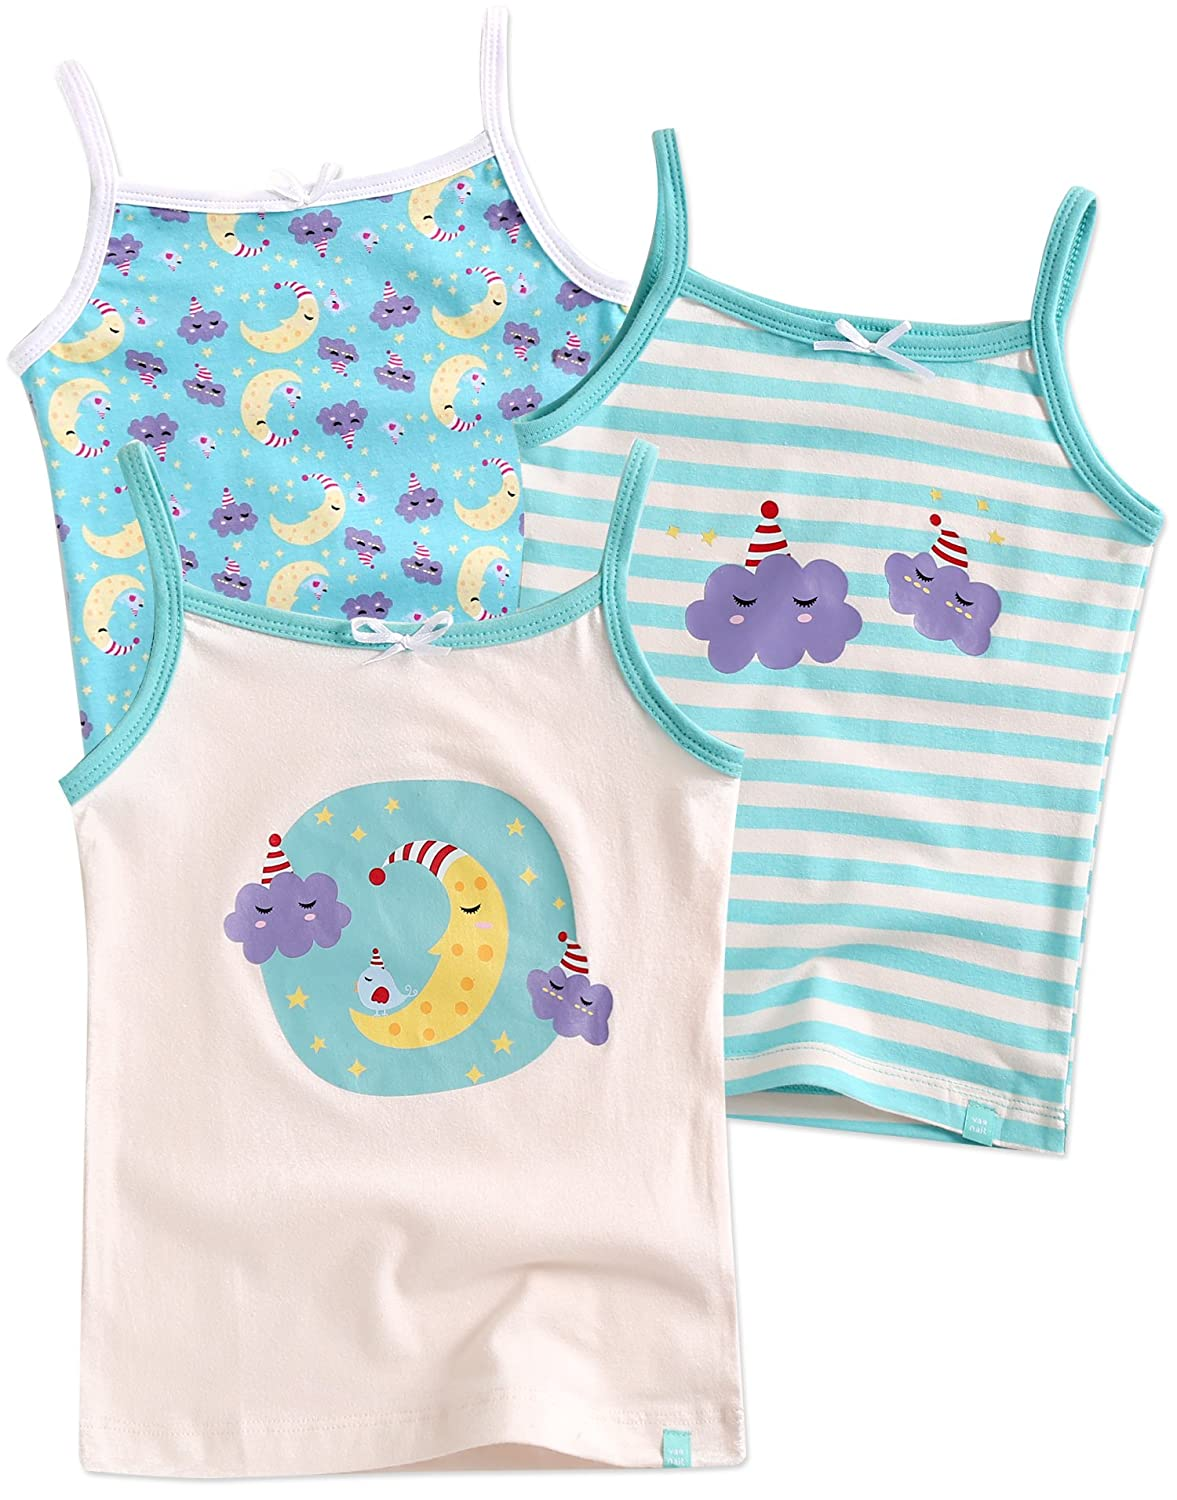 Vaenait Baby 2T-7T Kids Girls 100% Cotton Undershirts Tank Tops Cami (Pack of 3) GB-044